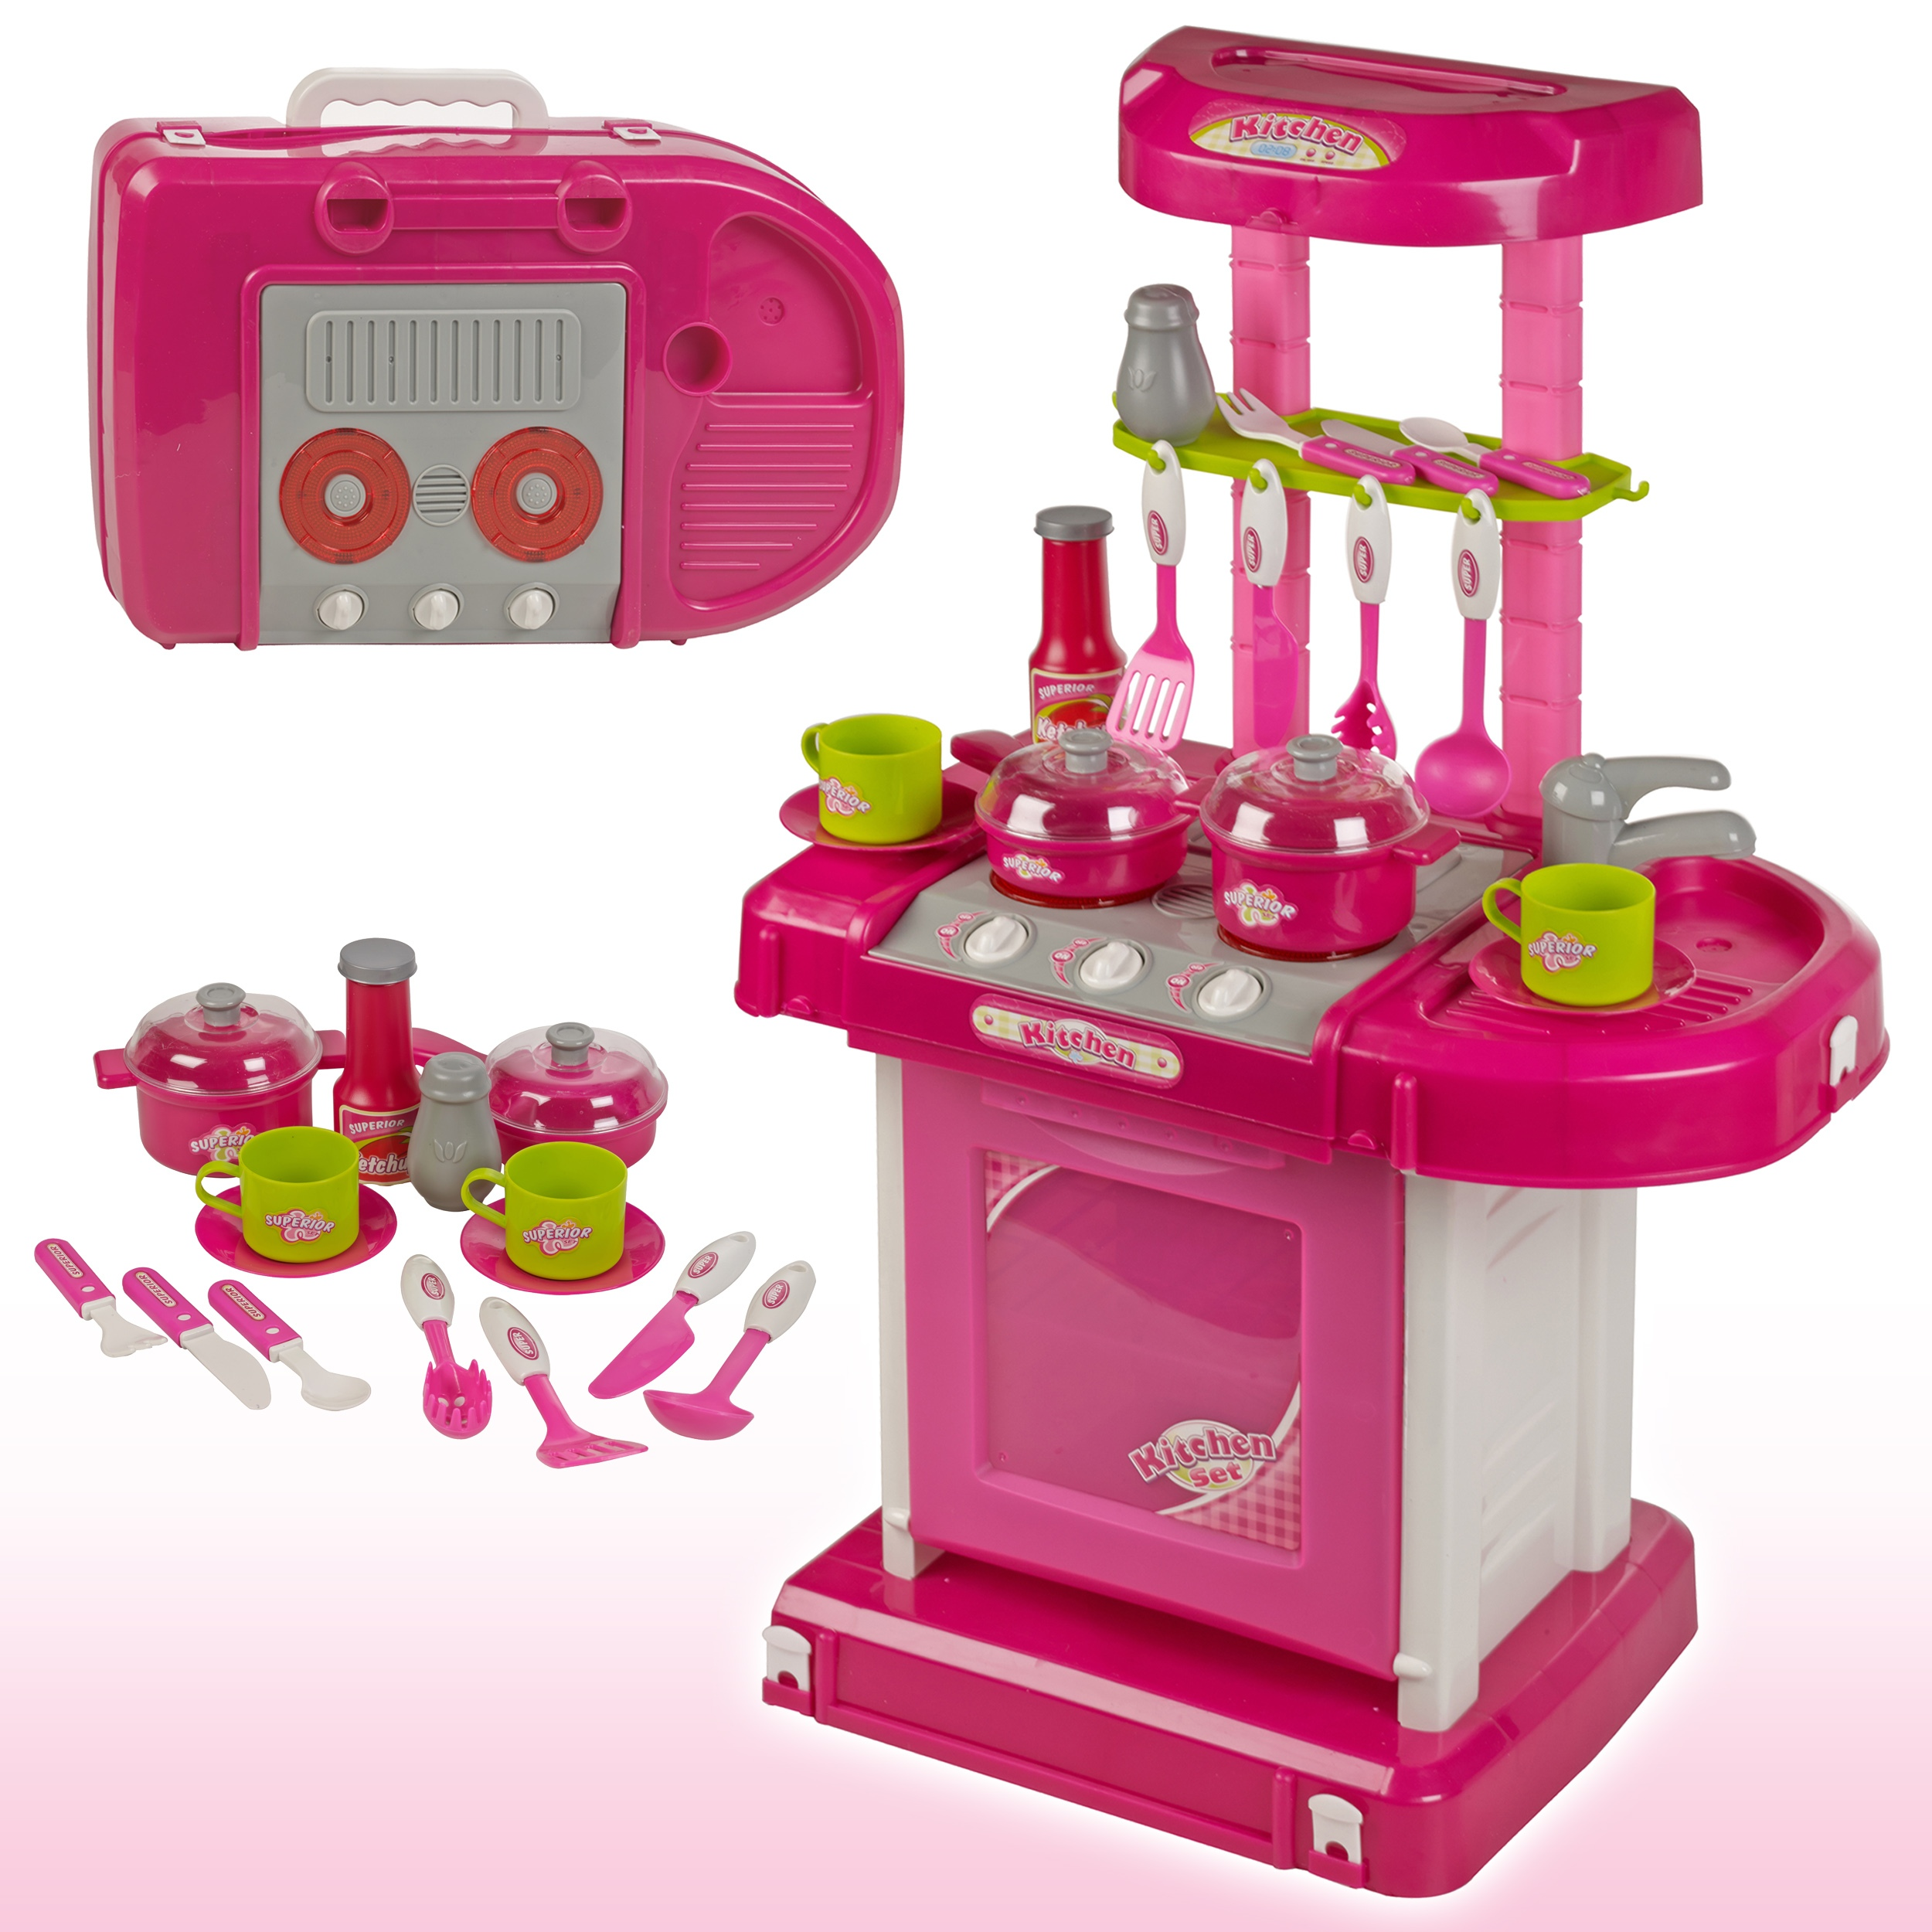 kitchen set for girl liberty cabinet hardware girls portable electronic cooking children 39s play